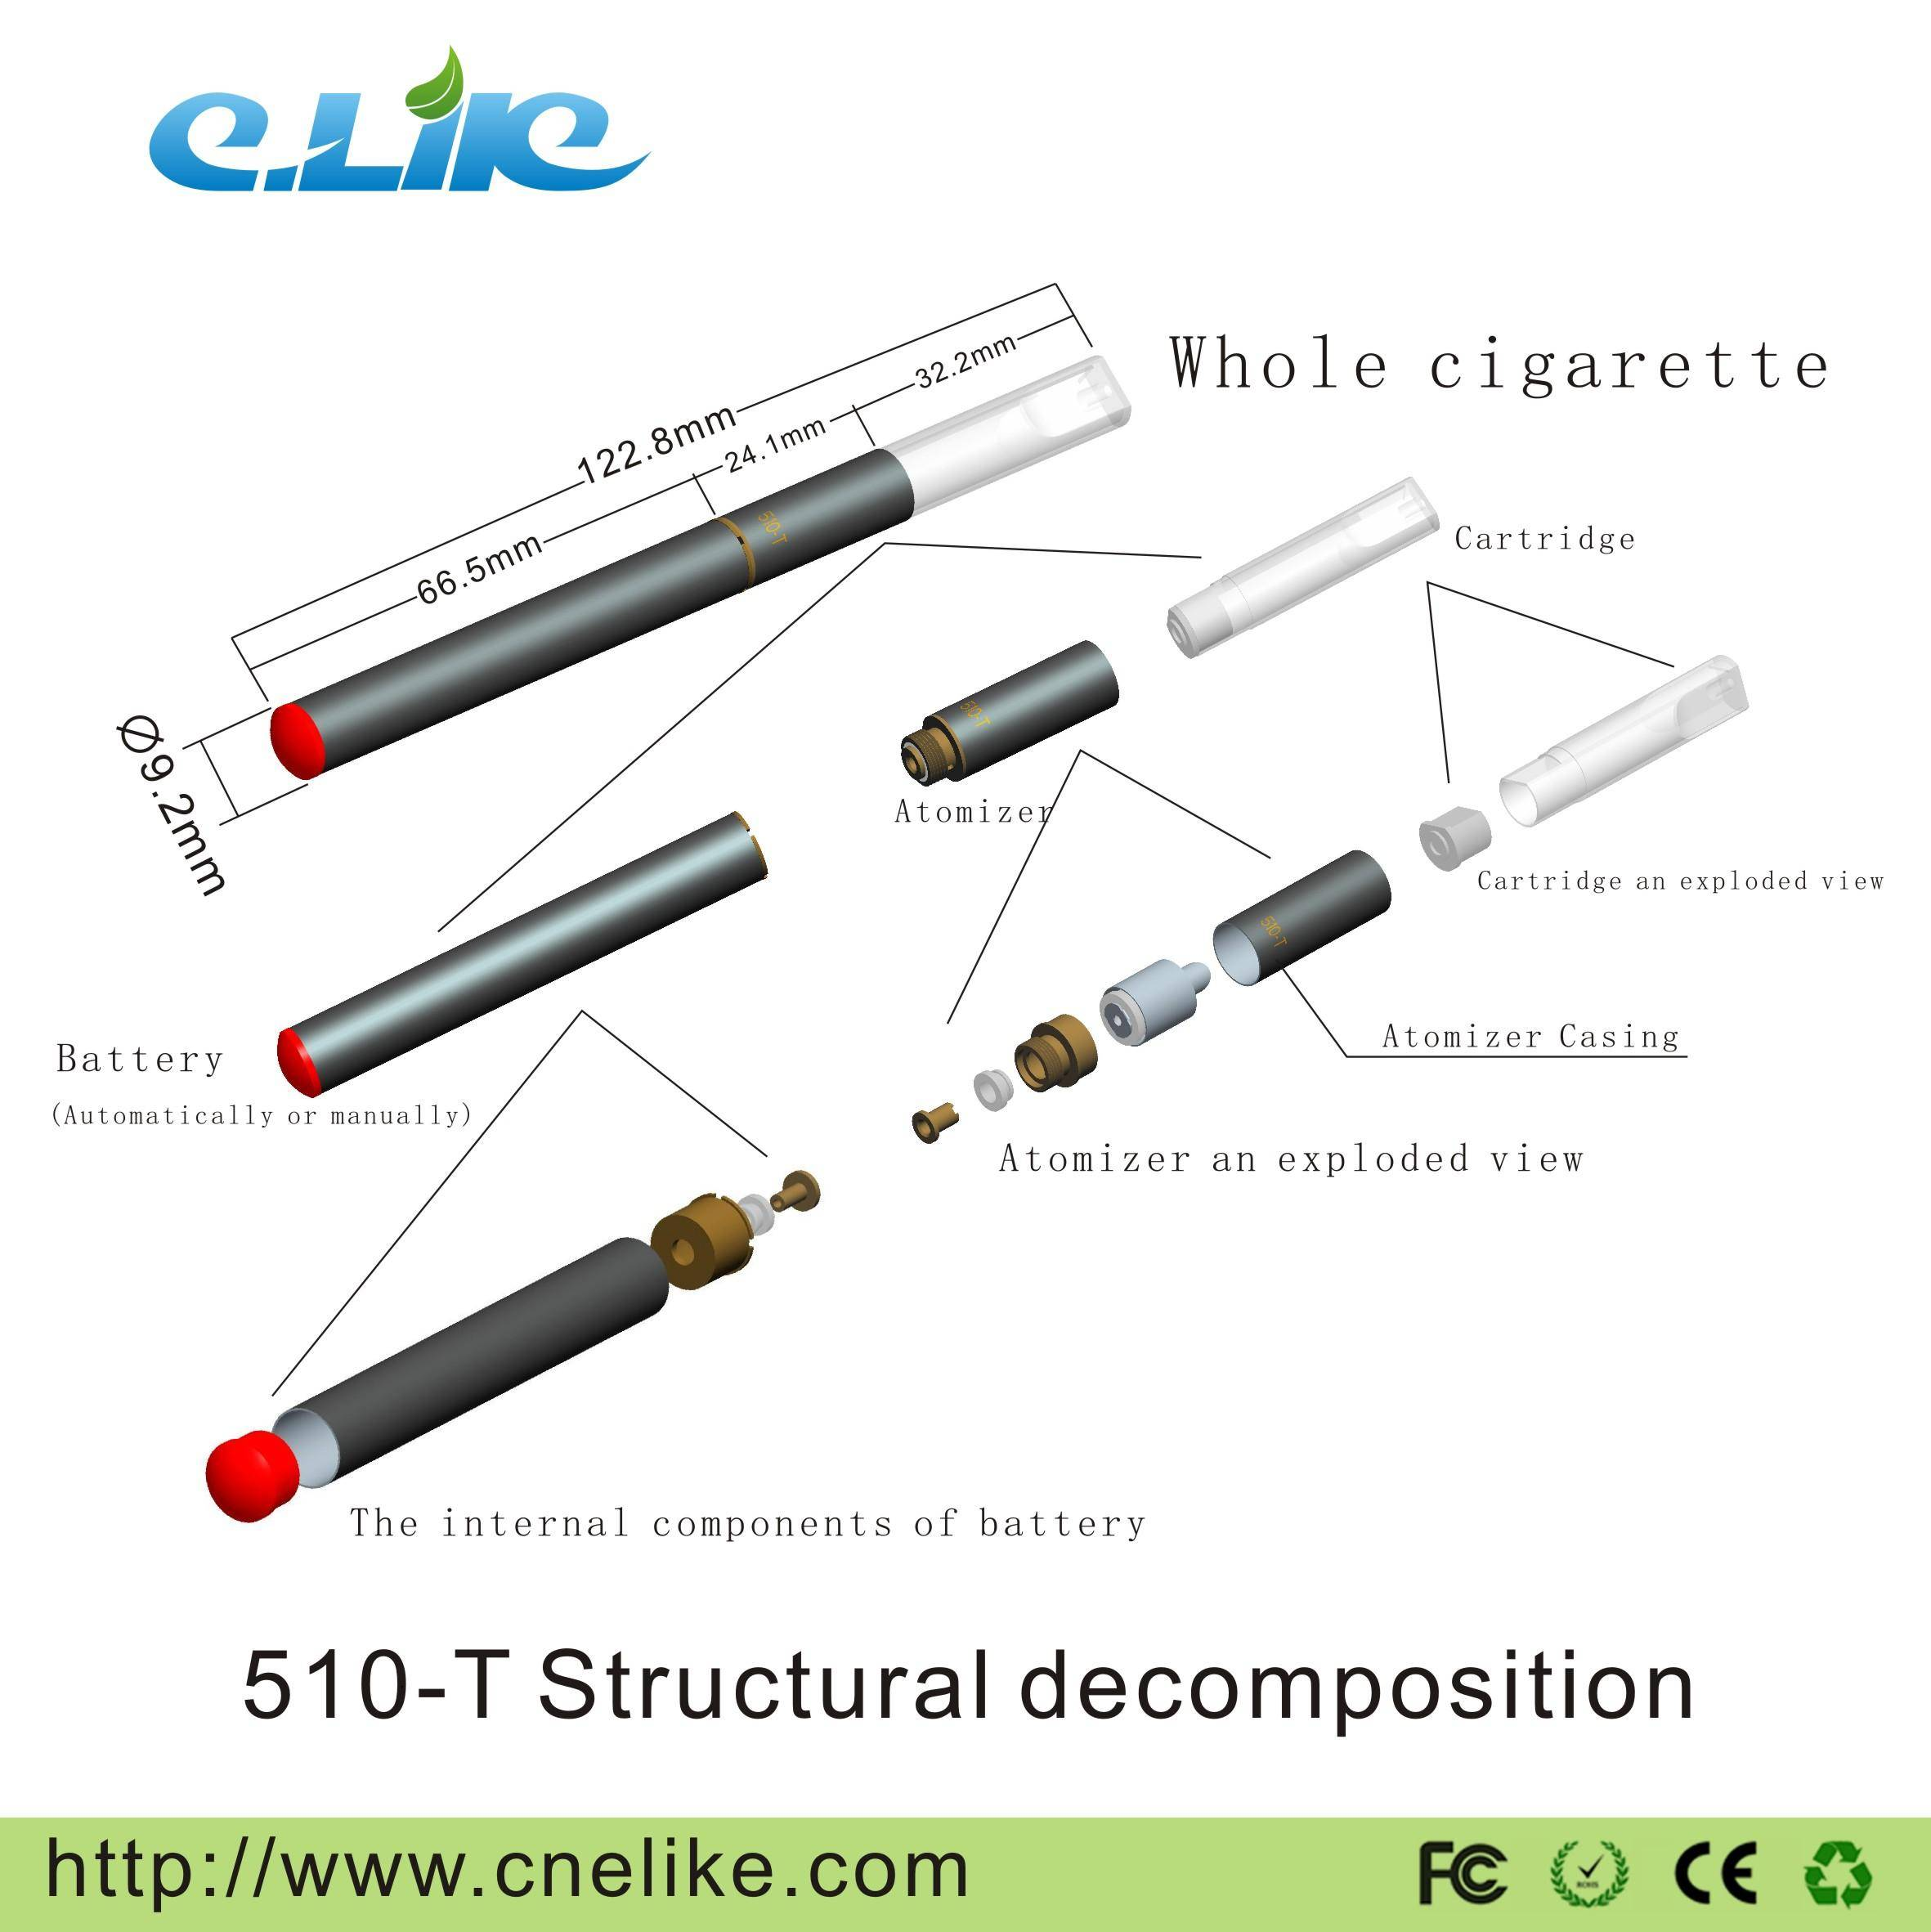 CE/RoHS 510-T Clearomizer Electronic Cigarette with Auto/Manual Battery